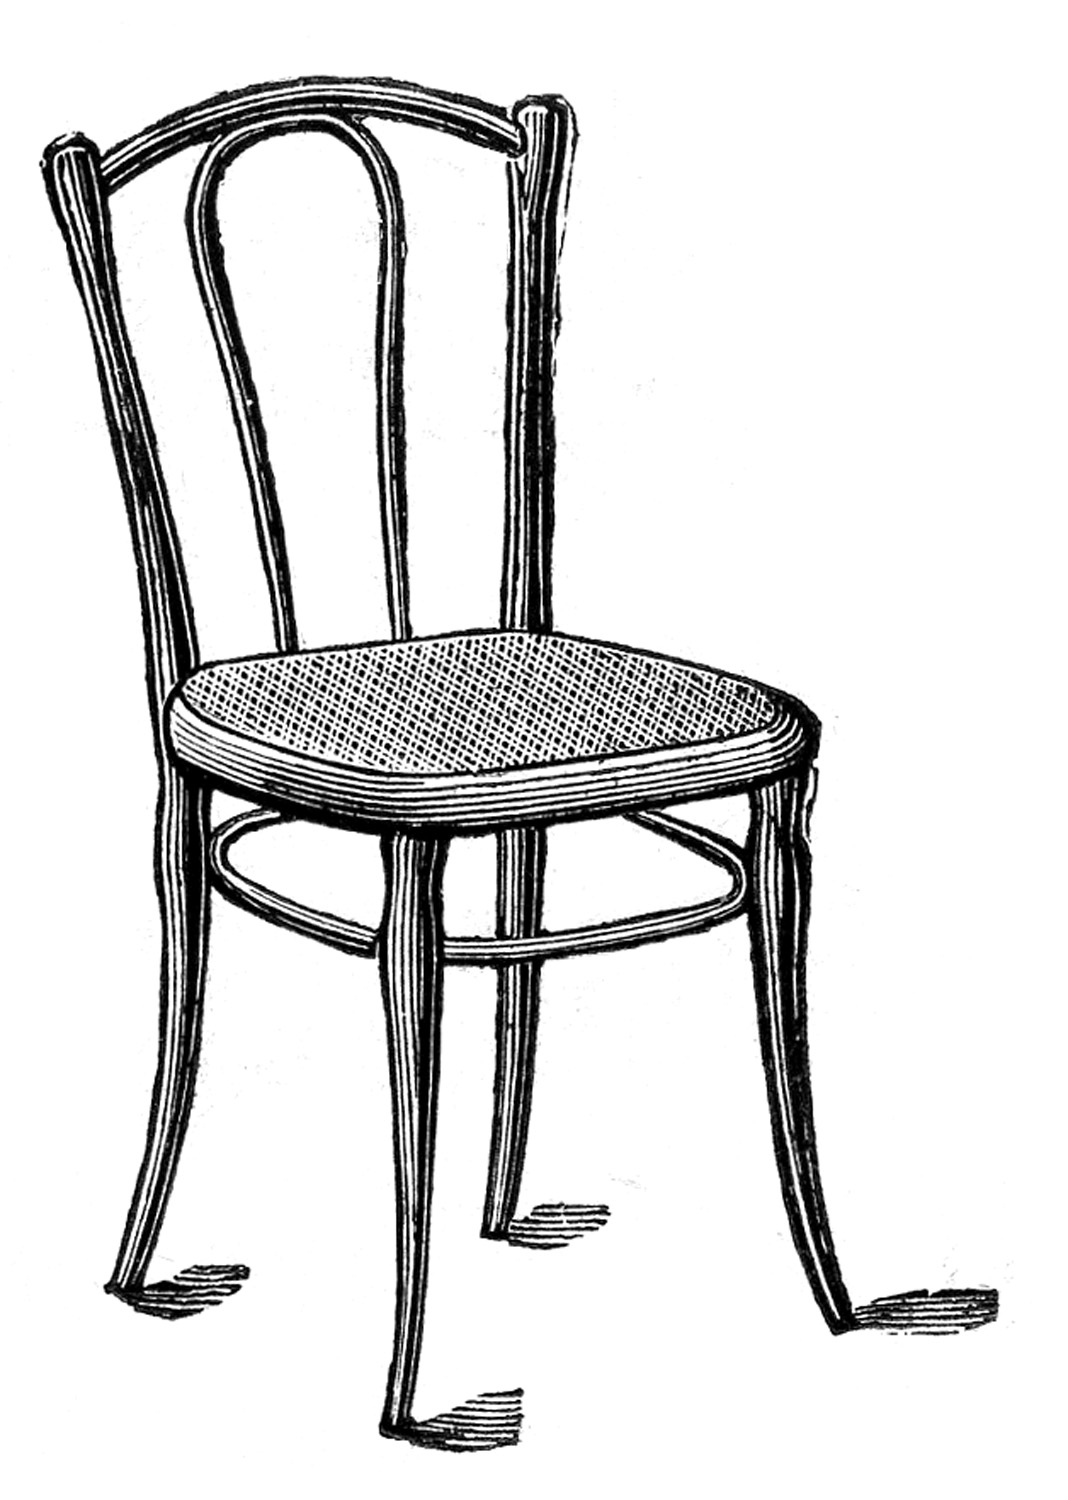 Clip art black and white chair clipart.